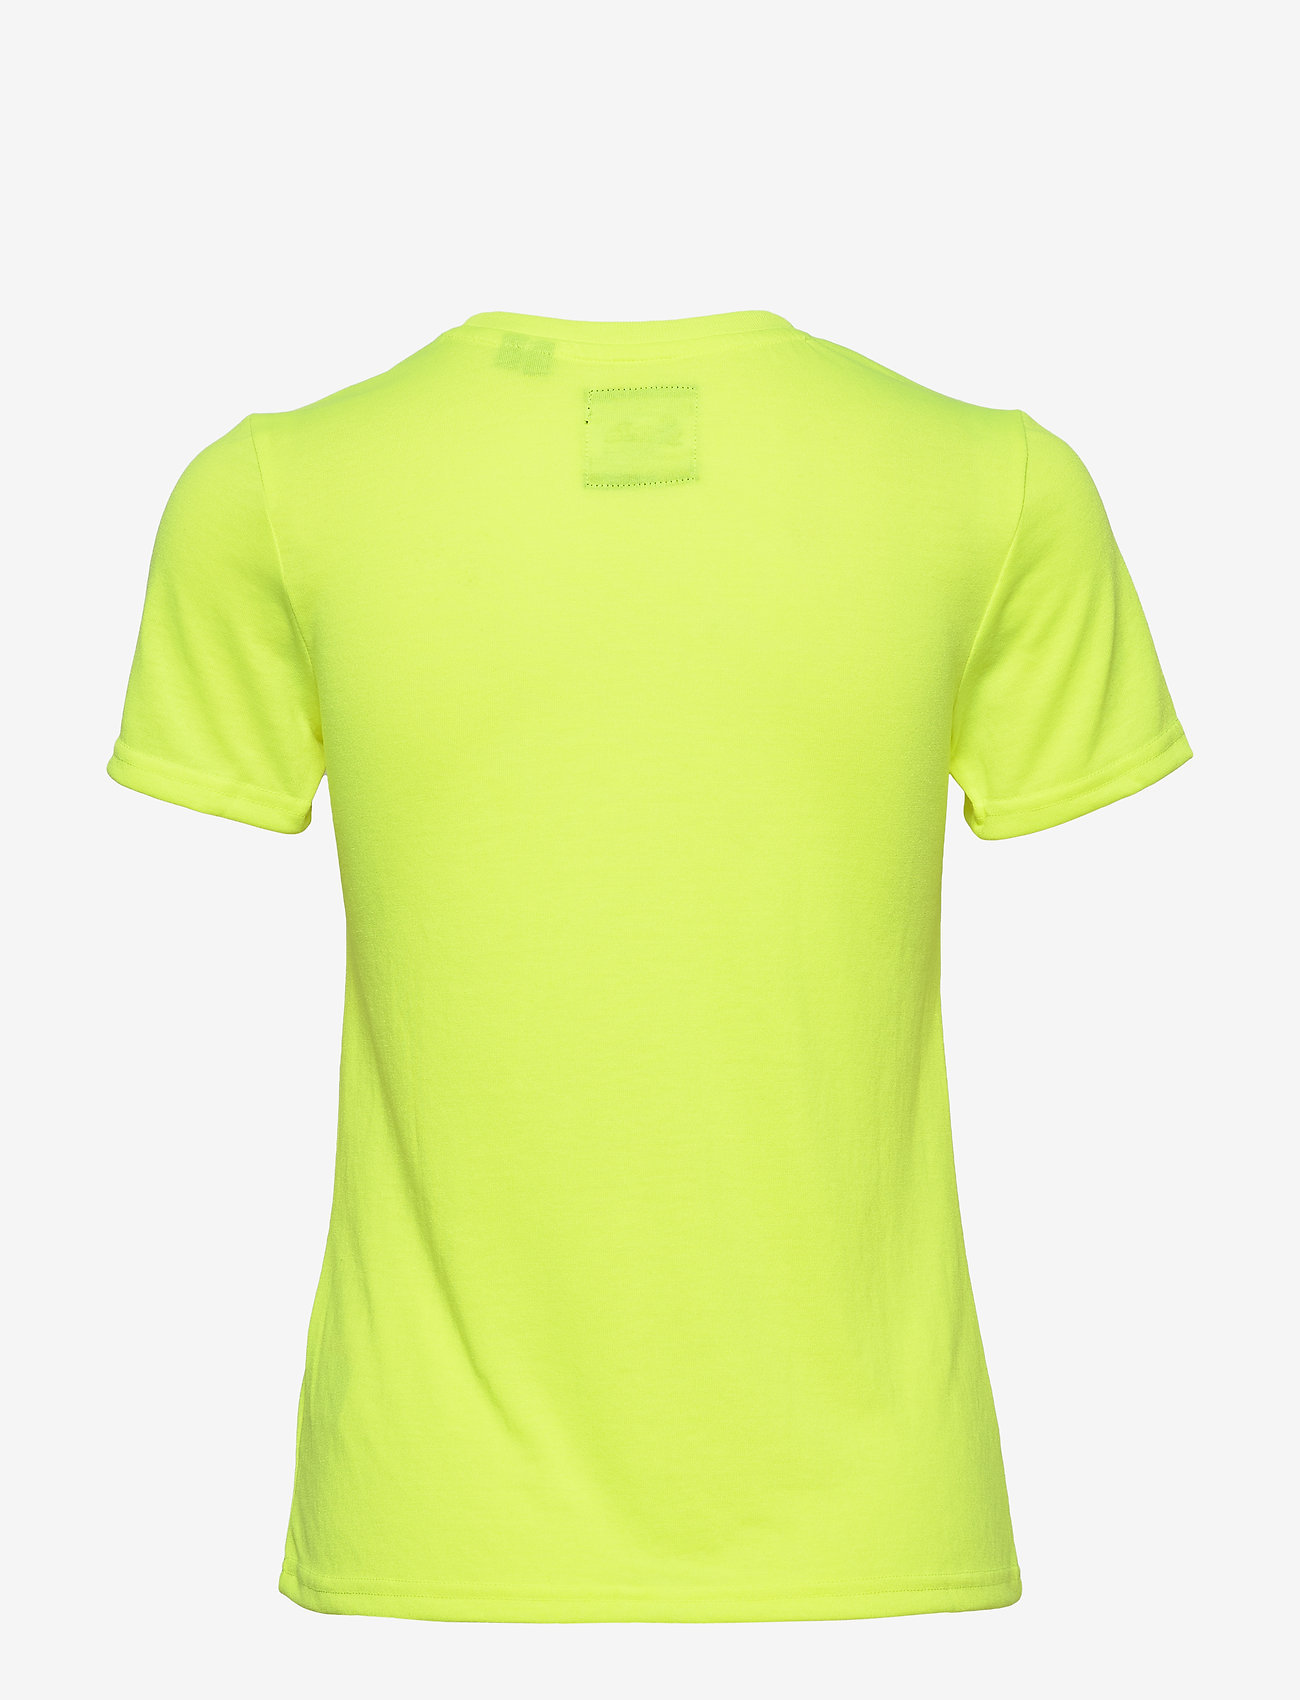 Vl Outline Pop Entry Tee (Neon Yellow) - Superdry lZnsdT